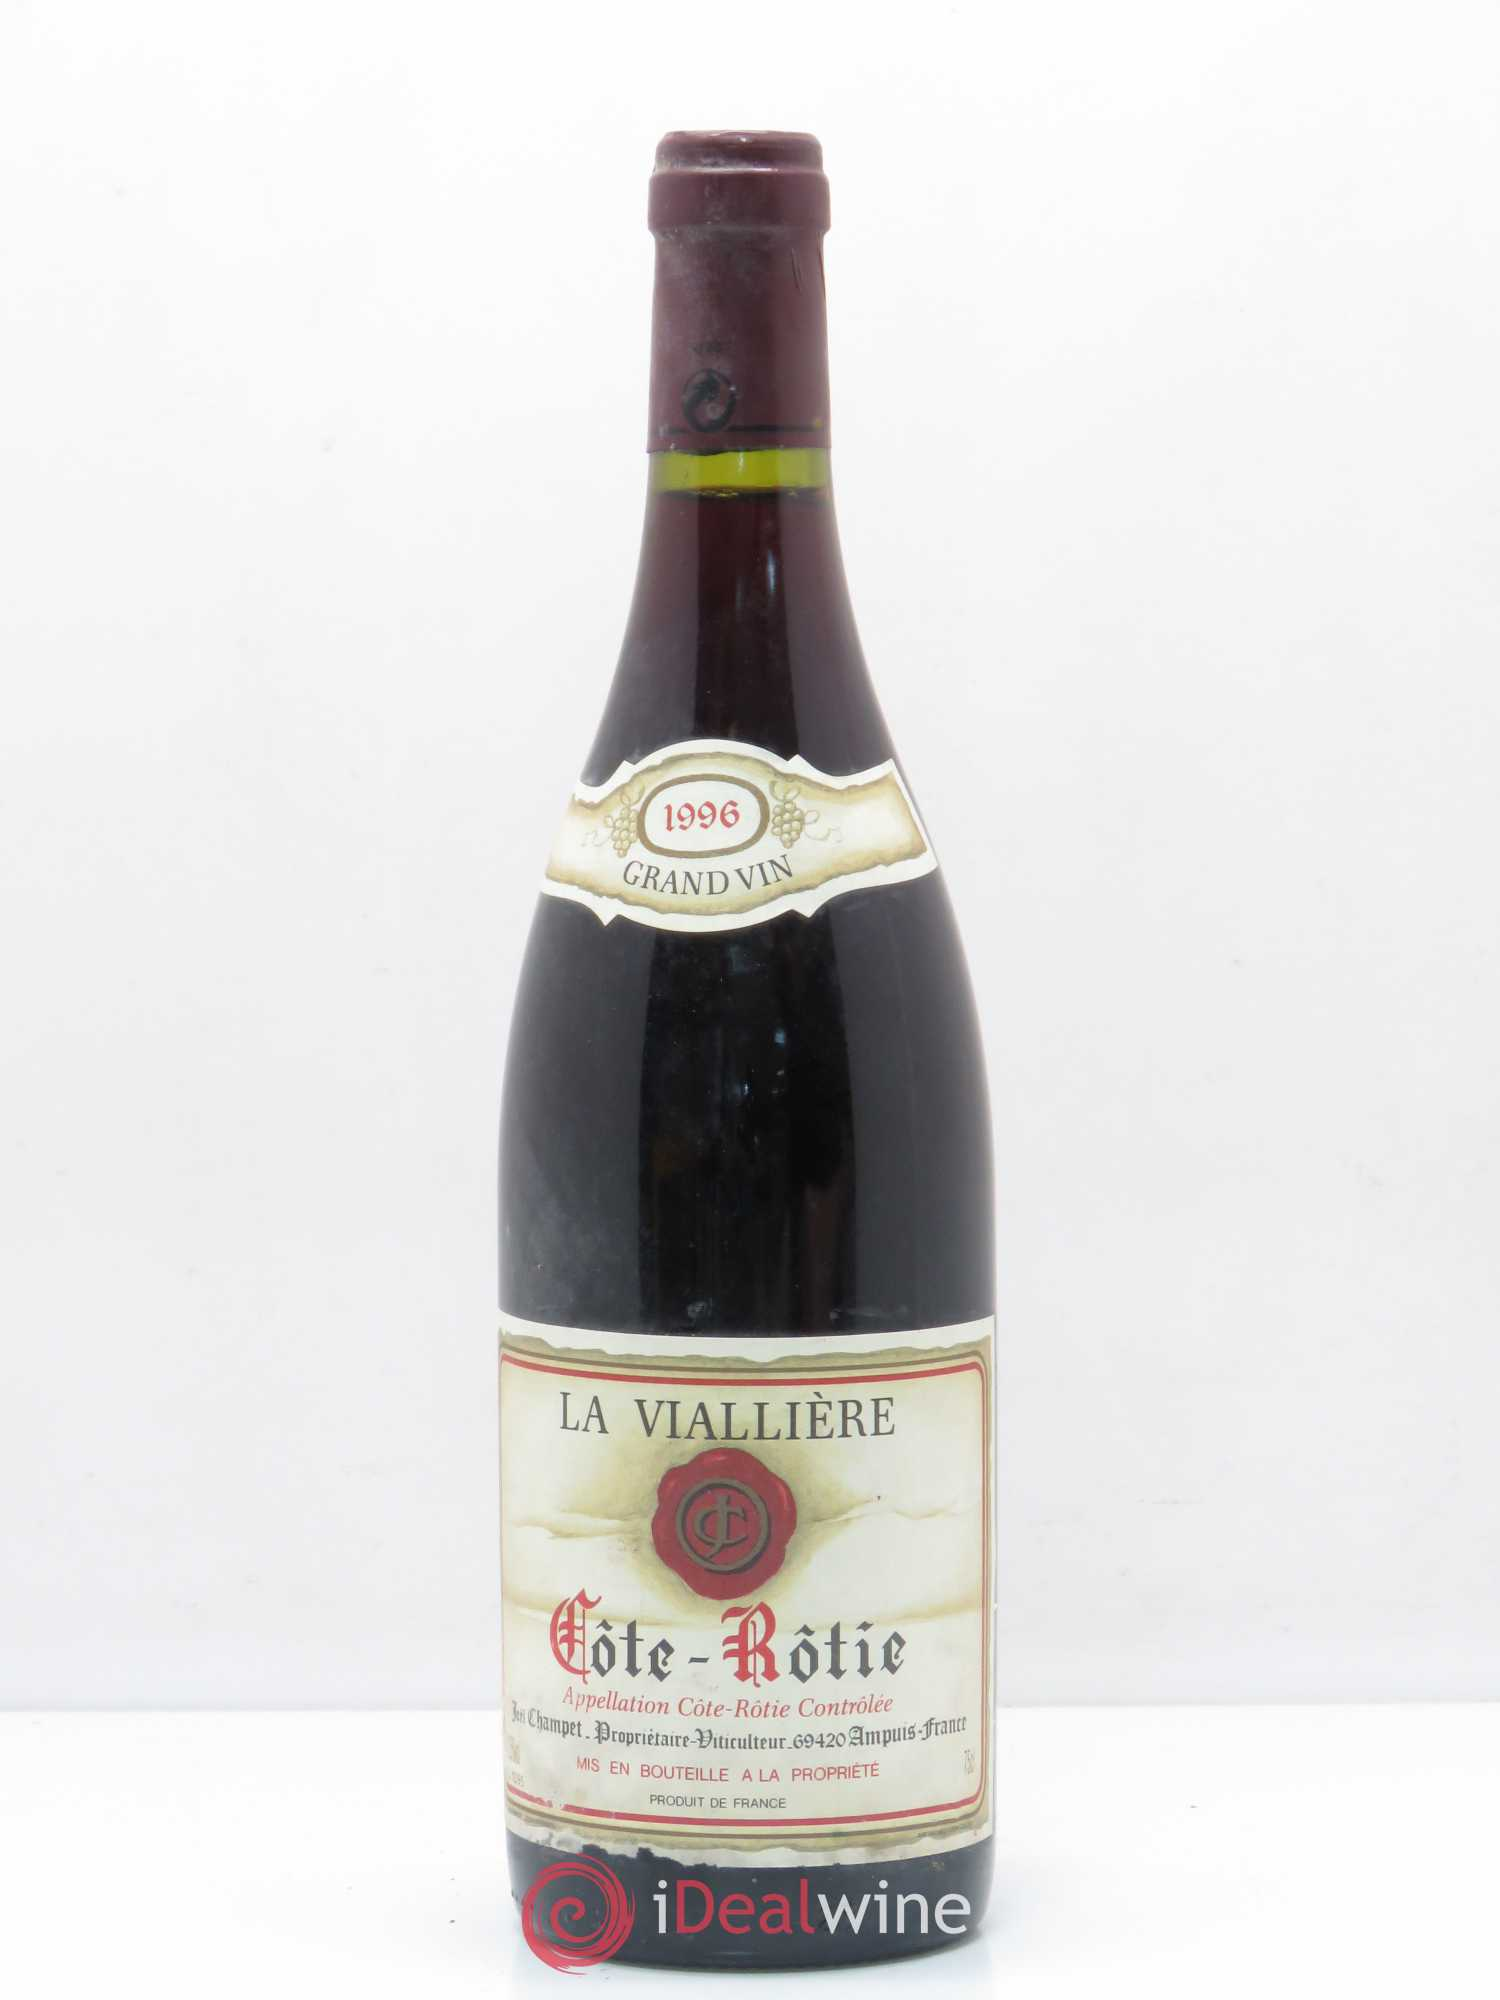 Côte-Rôtie La Viallière Joel Champet 1996 - Lot of 1 Bottle